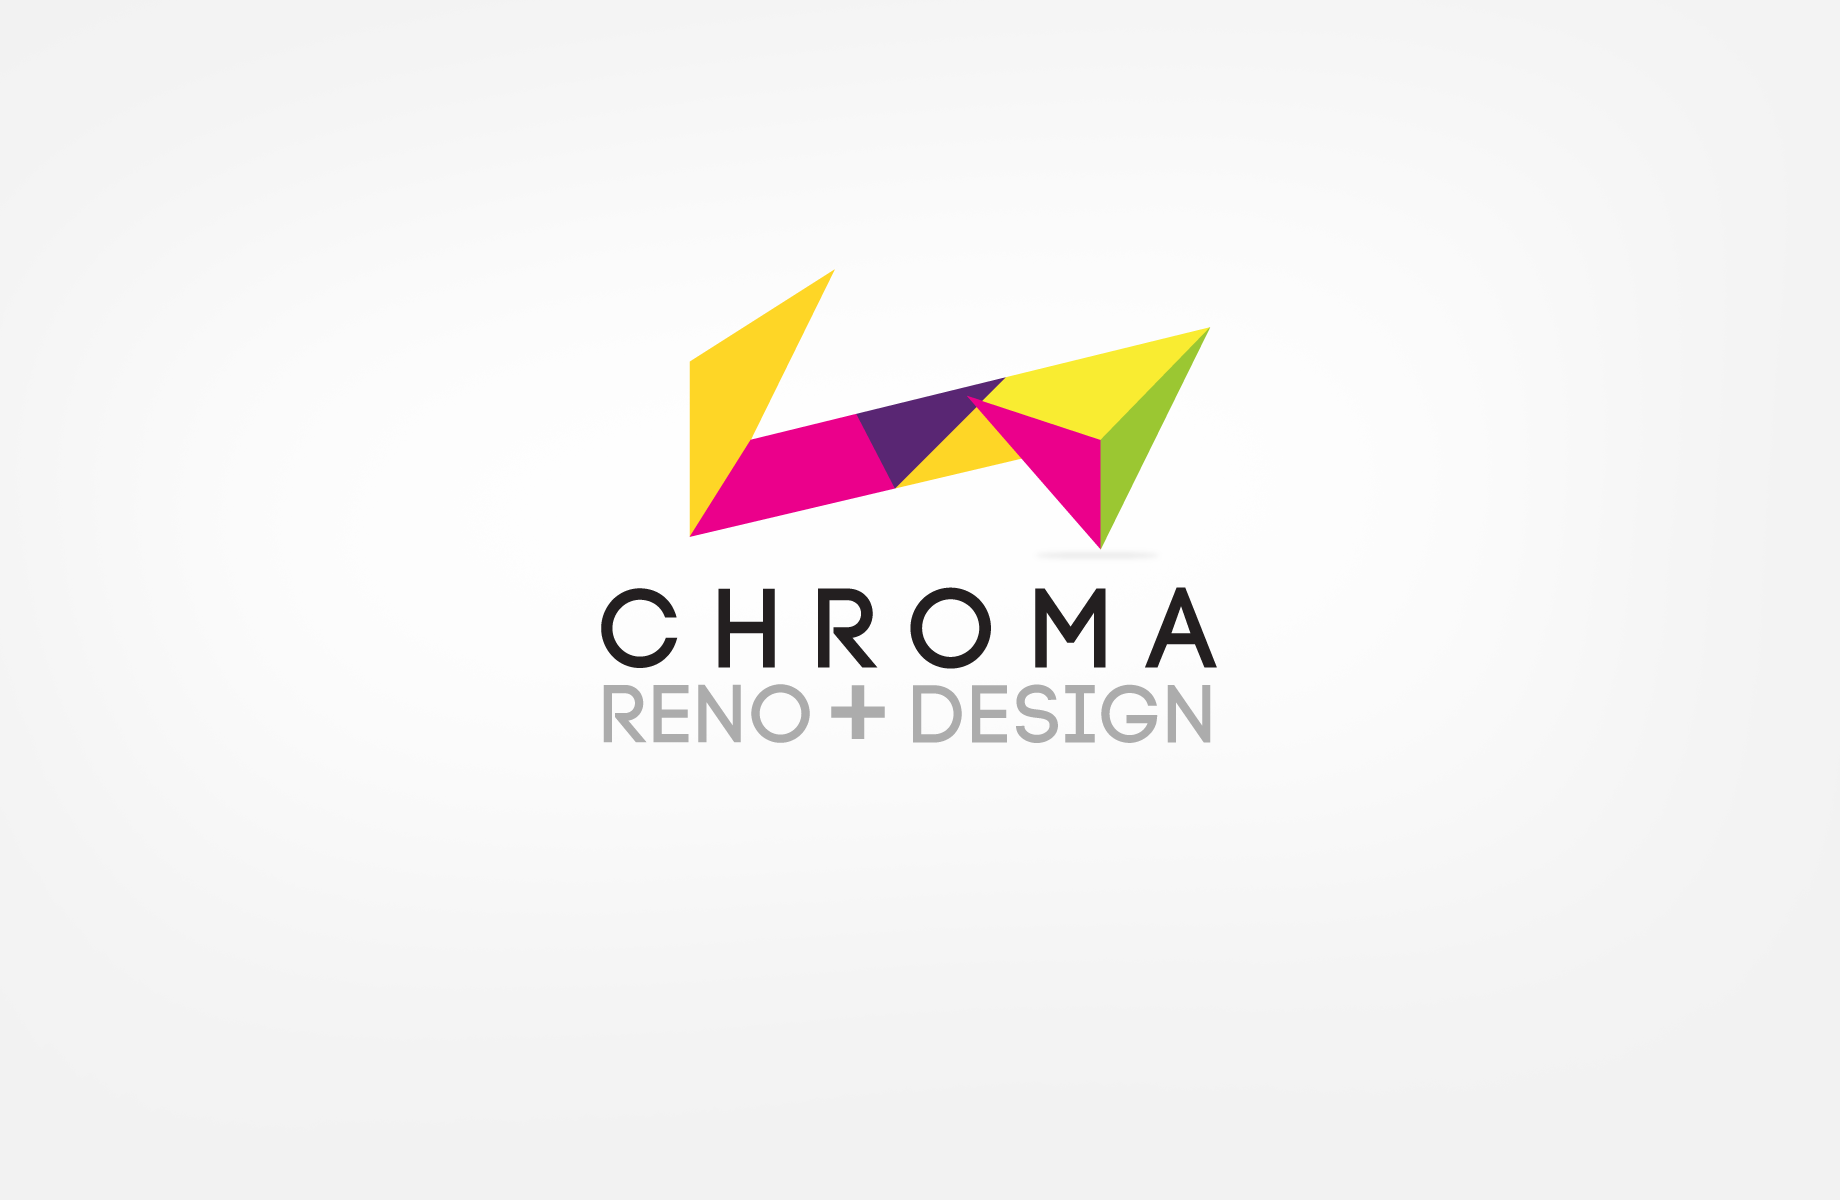 Logo Design by Jan Chua - Entry No. 68 in the Logo Design Contest Inspiring Logo Design for Chroma Reno+Design.